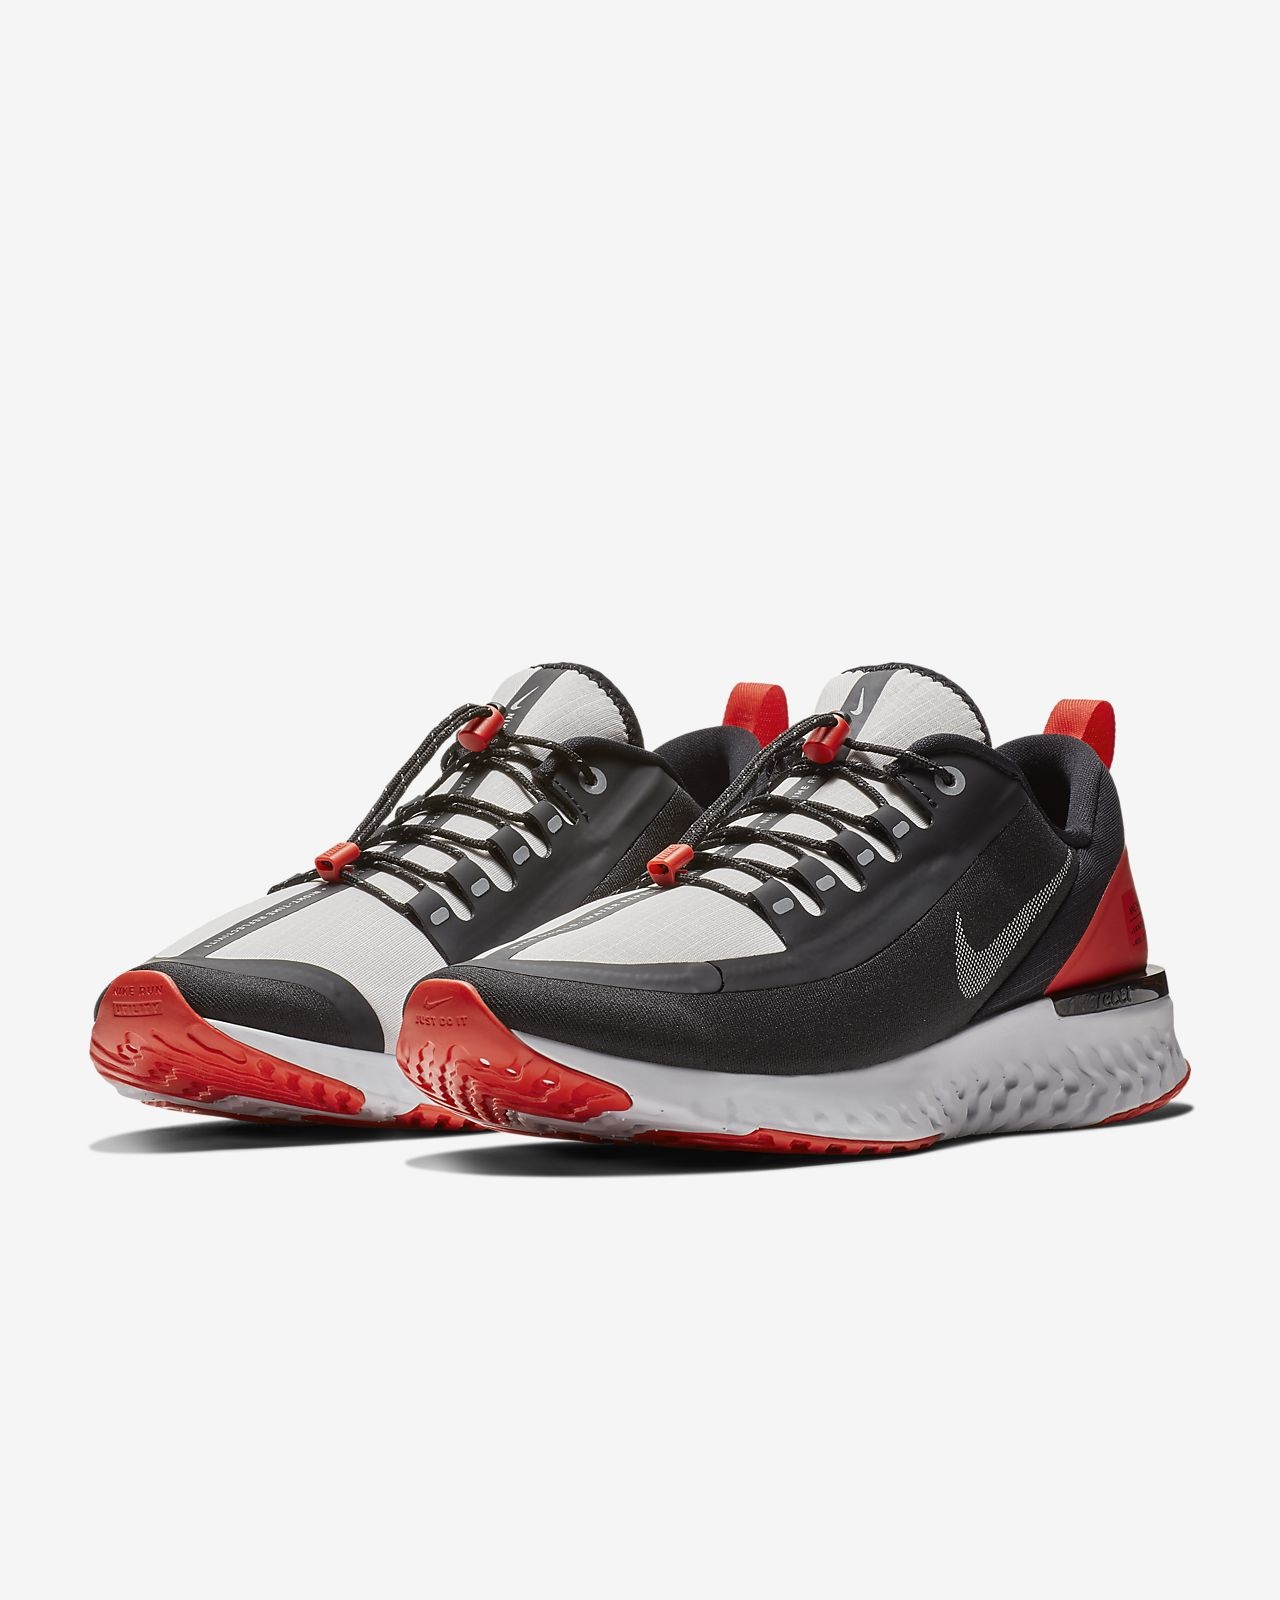 4f127c4c9d1a Nike Odyssey React Shield Water-Repellent Men s Running Shoe. Nike ...